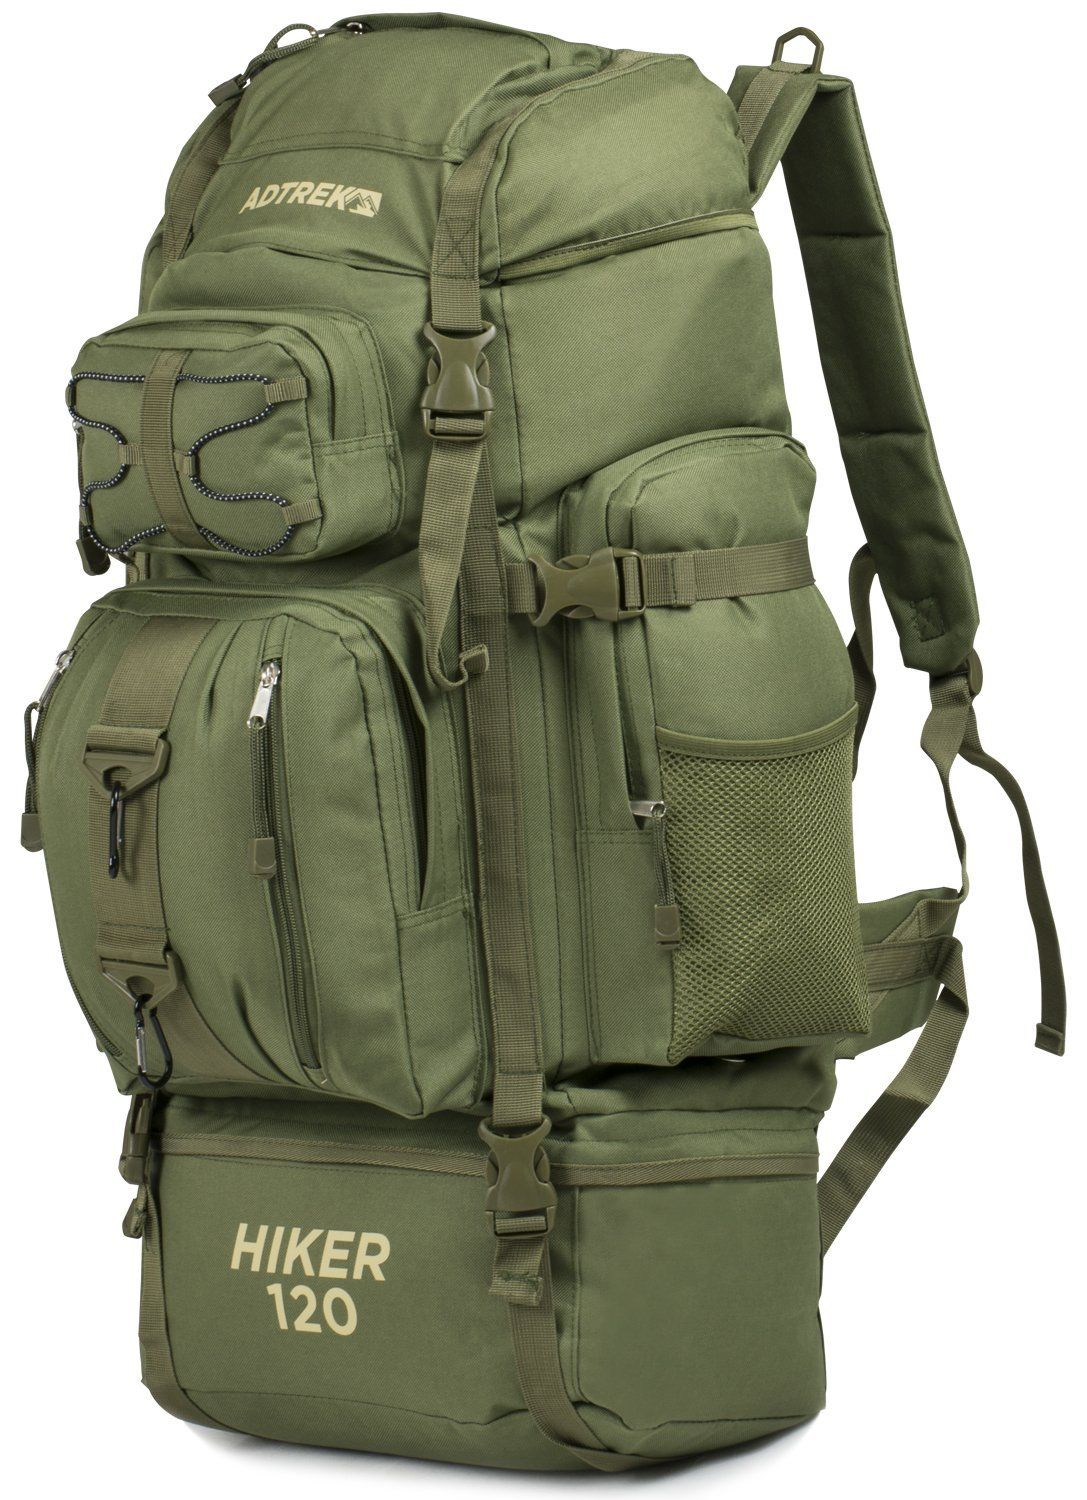 780dba4f673c Adtrek Olive Green 120L Hiker Backpack Extra Large Hiking Camping Luggage  Rucksack  Amazon.